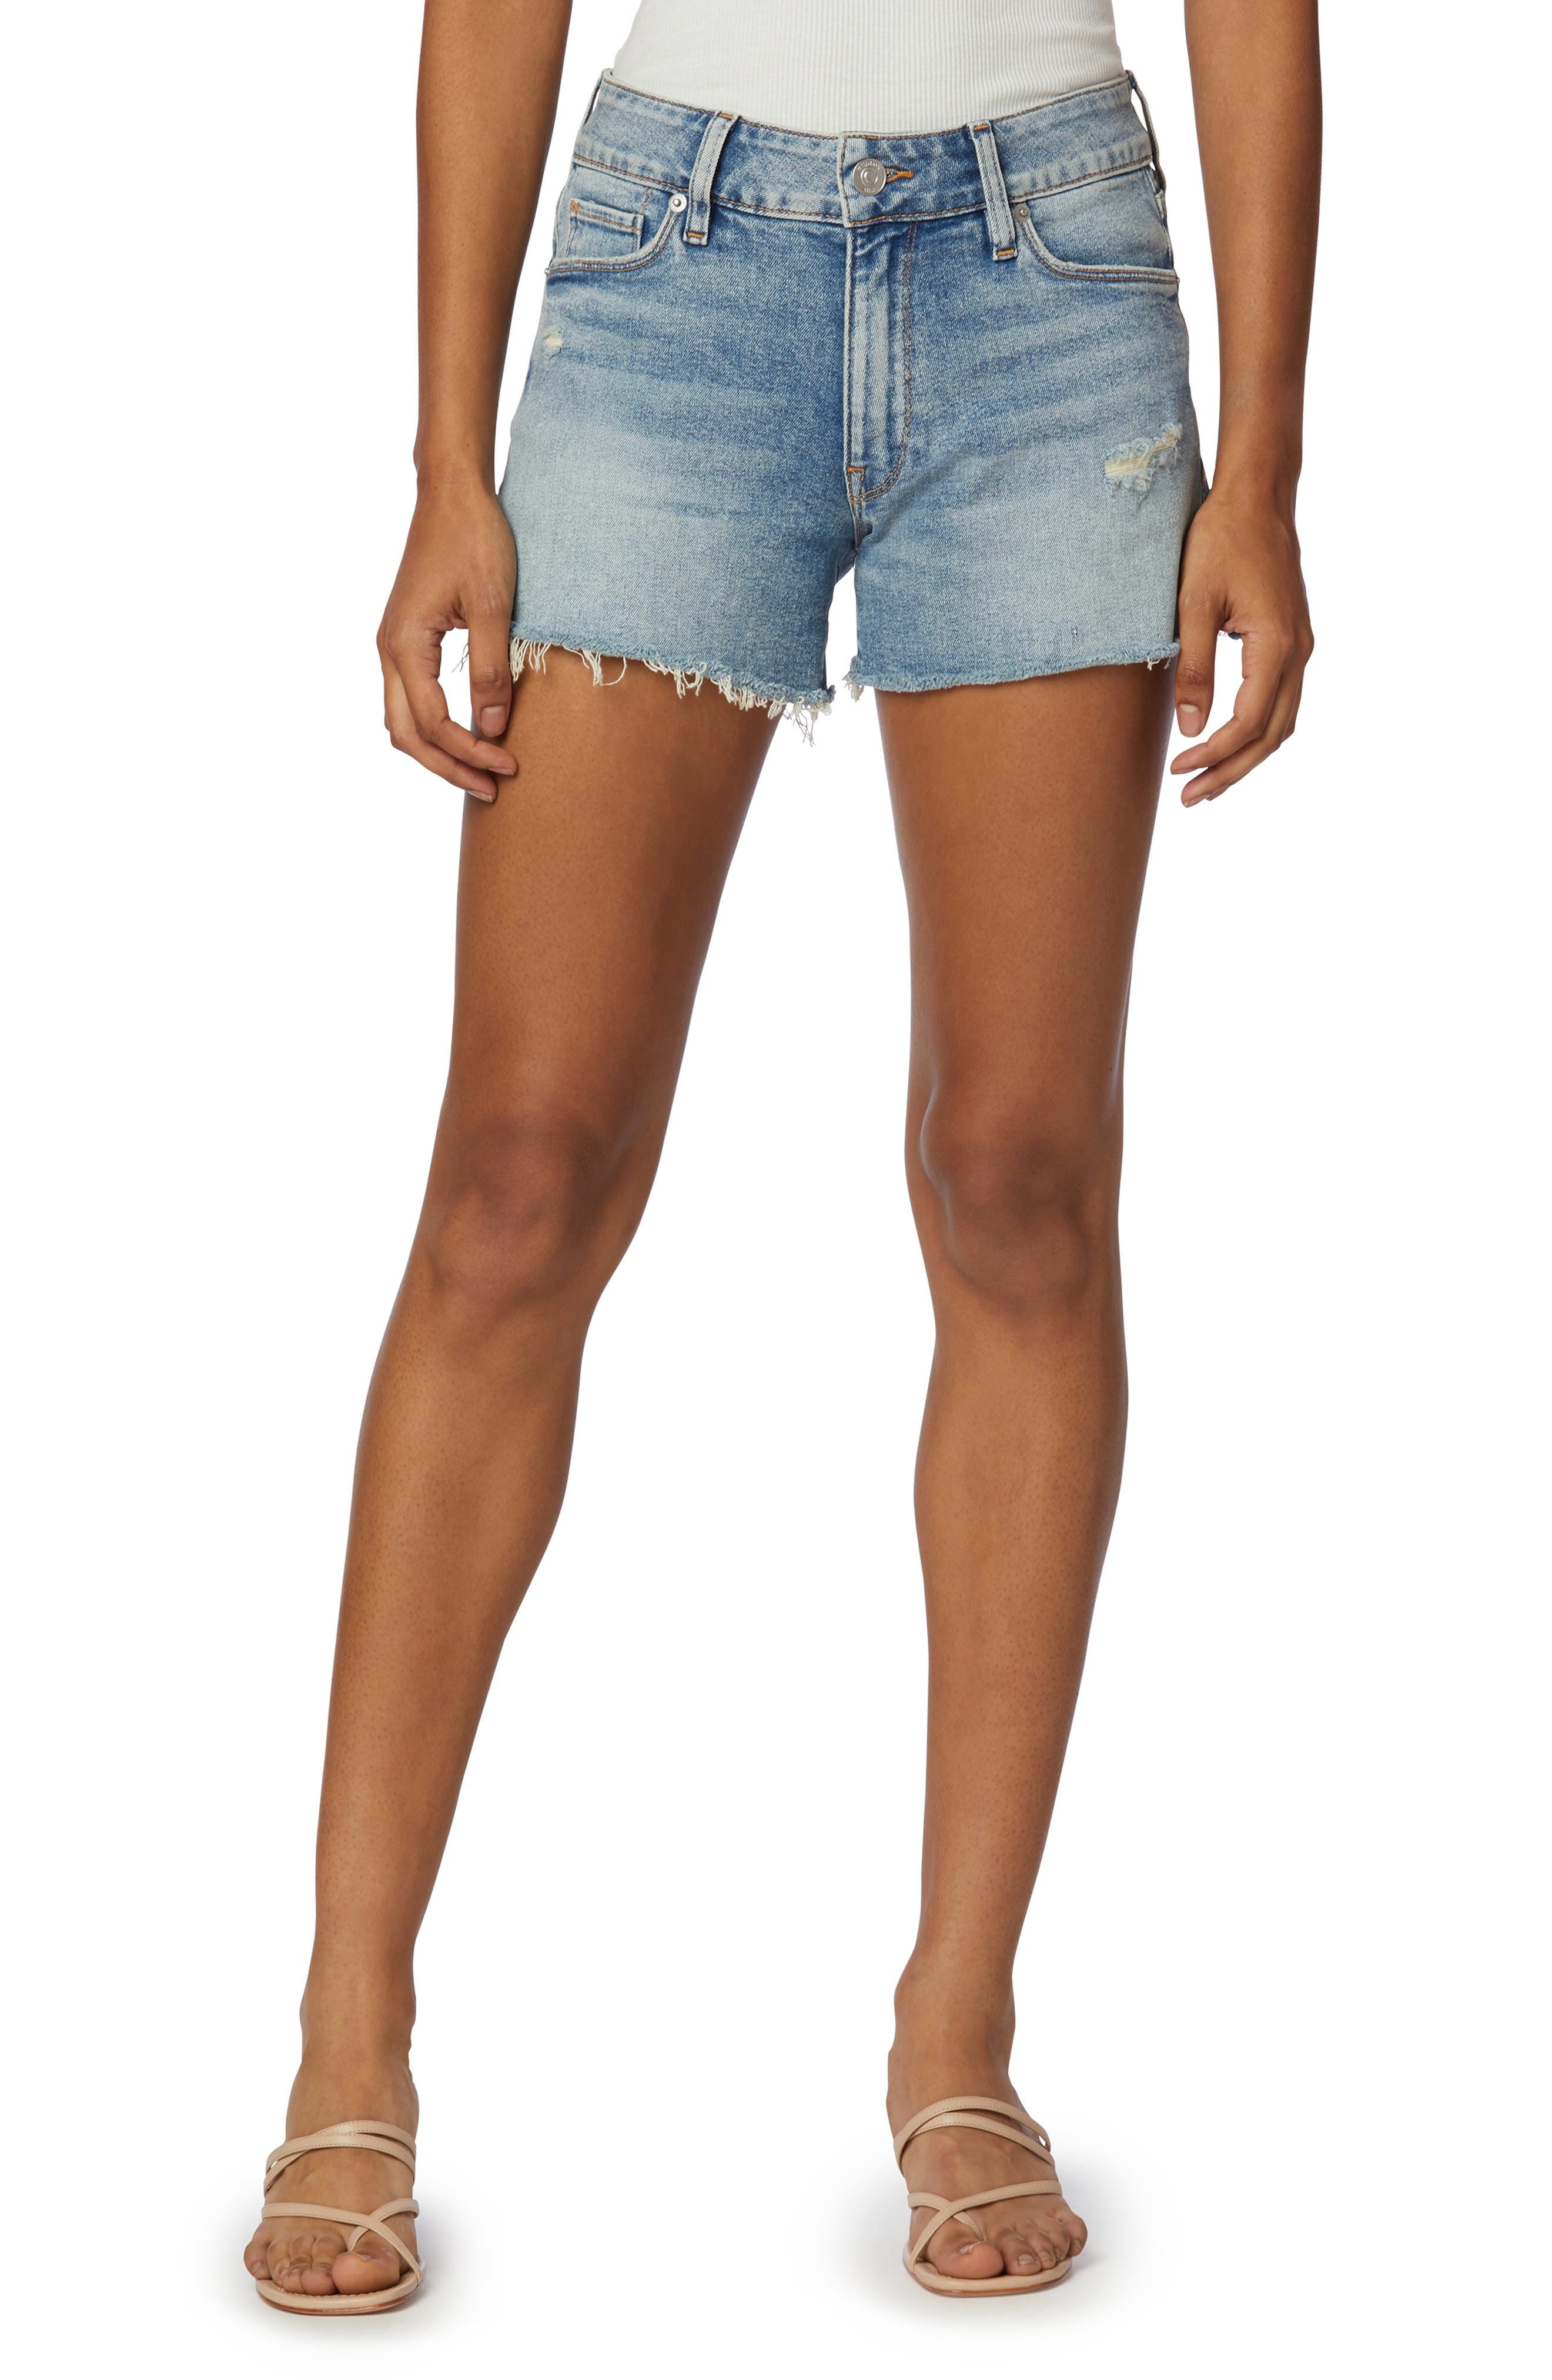 jean shorts with lace Noir brand